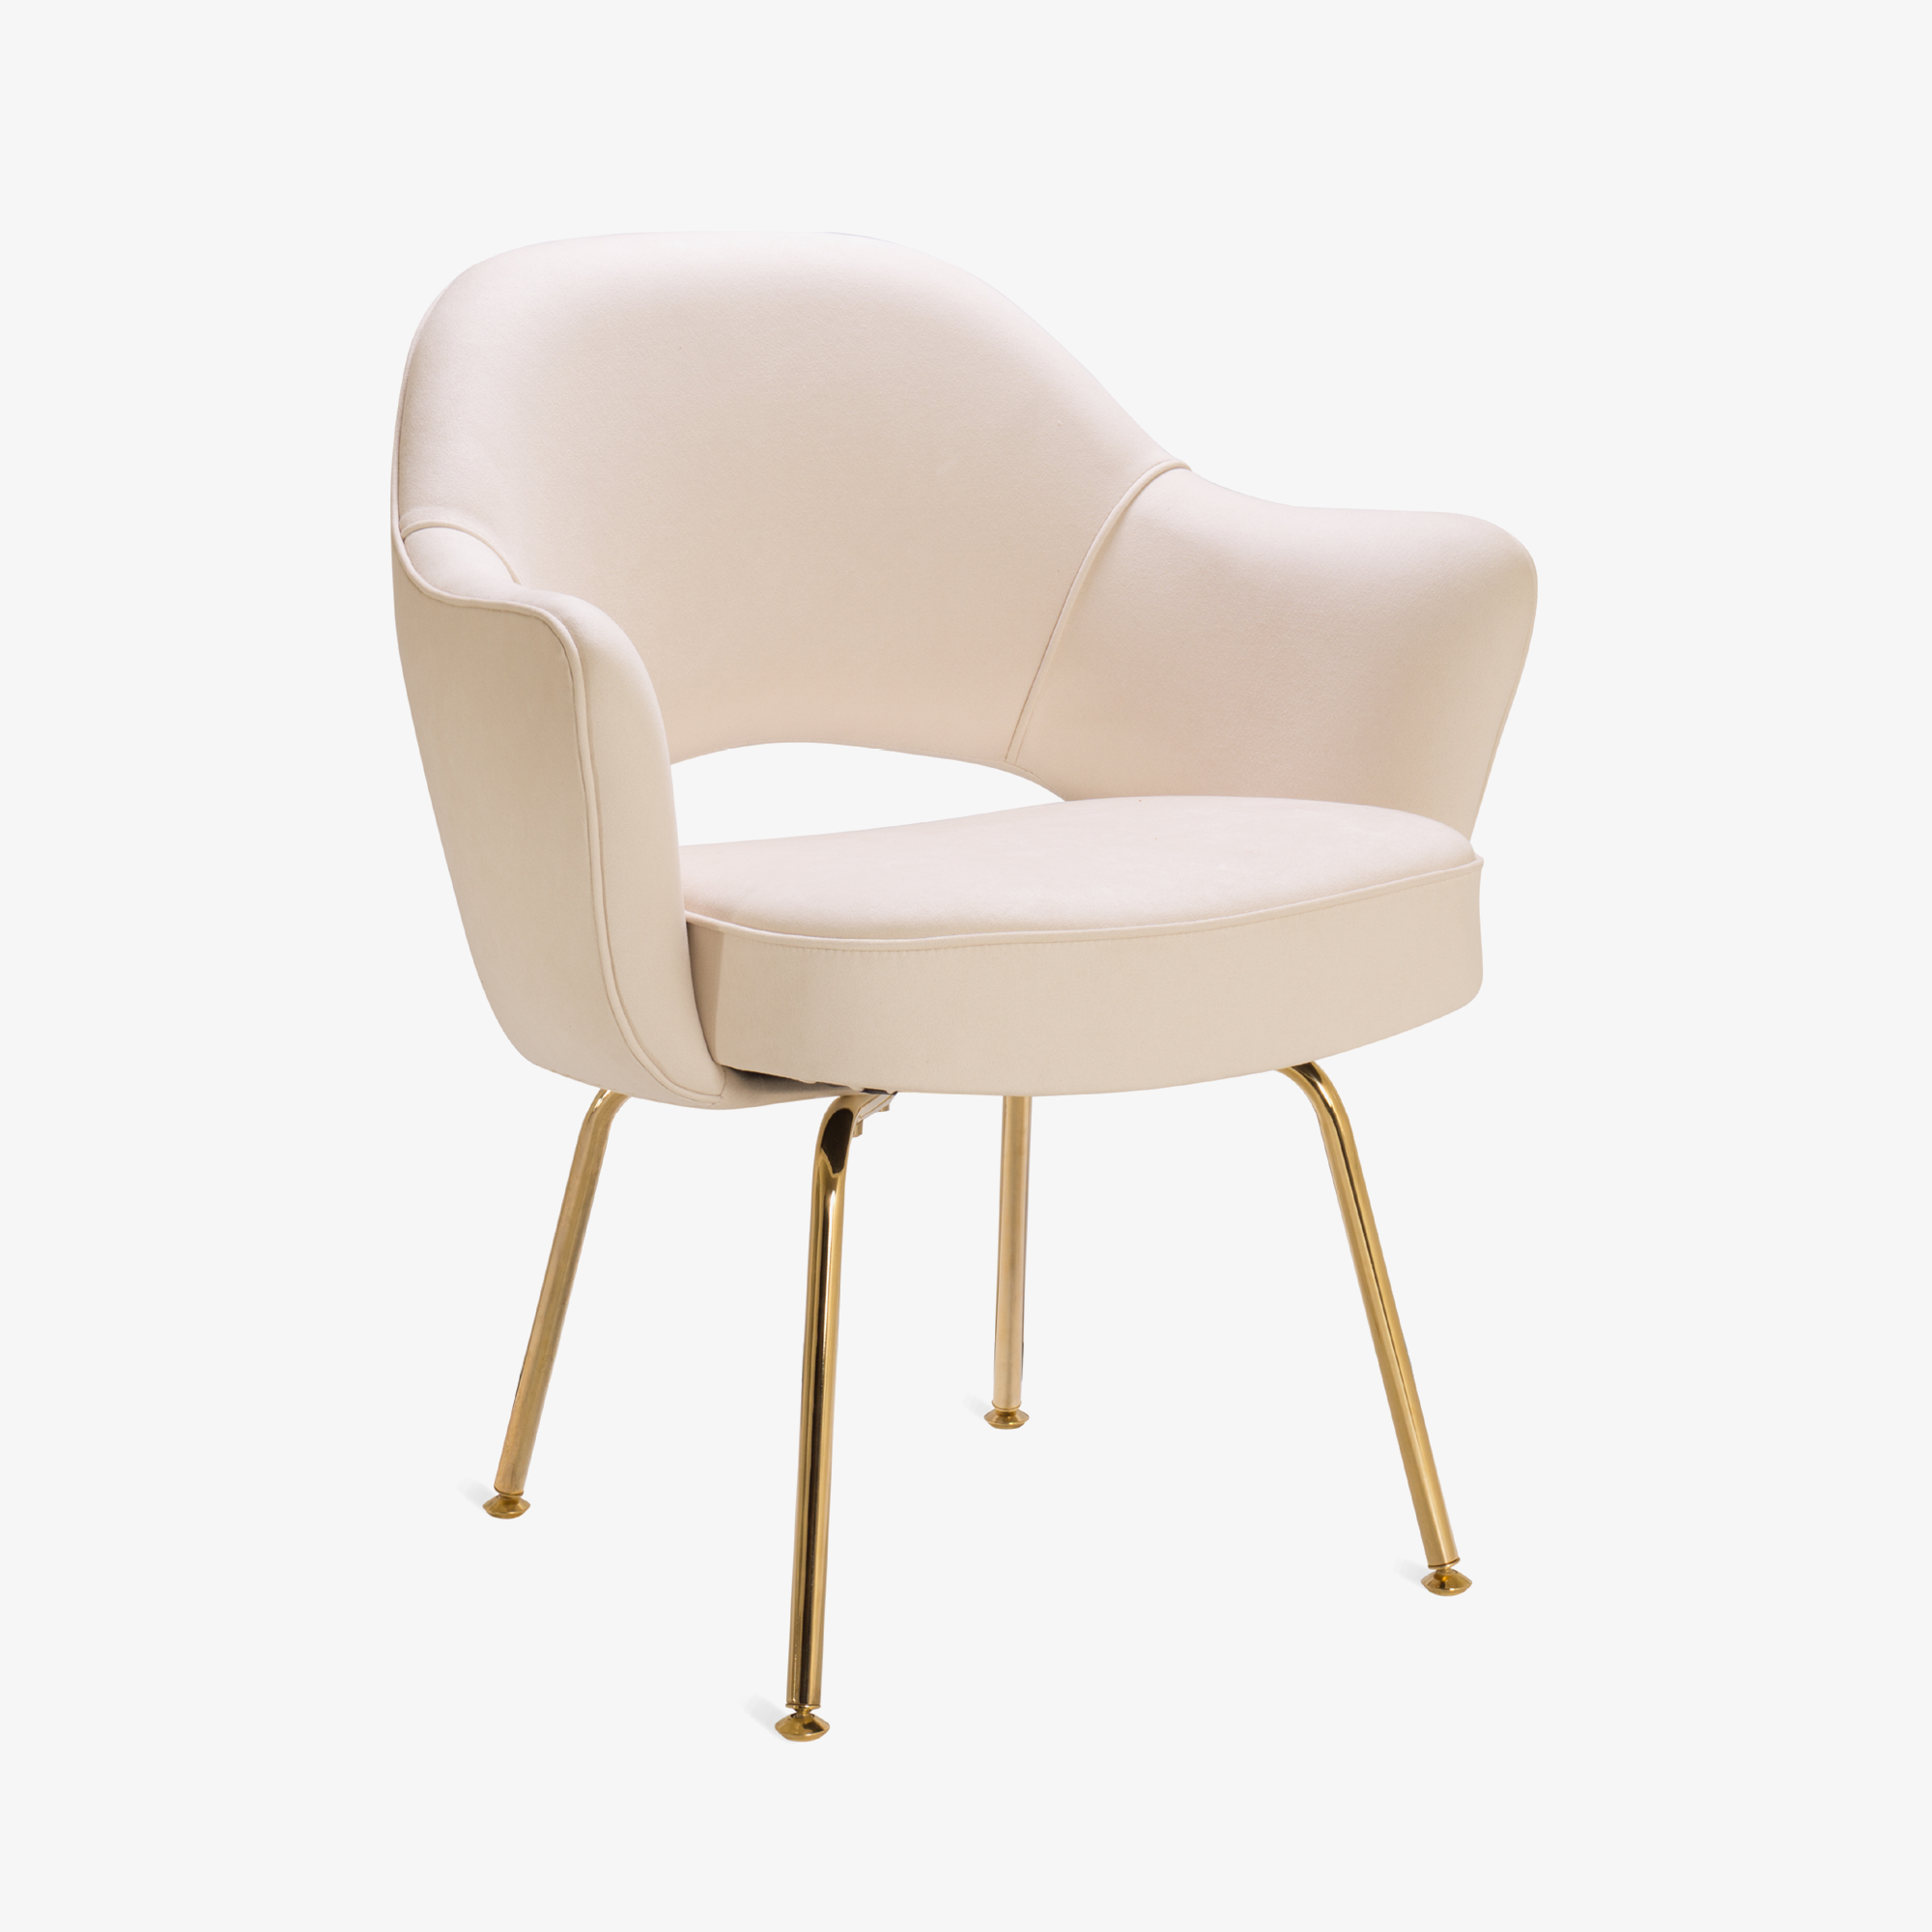 Knoll Saarinen Executive Arm Chair in Luxe Suede, 24k Gold Edition